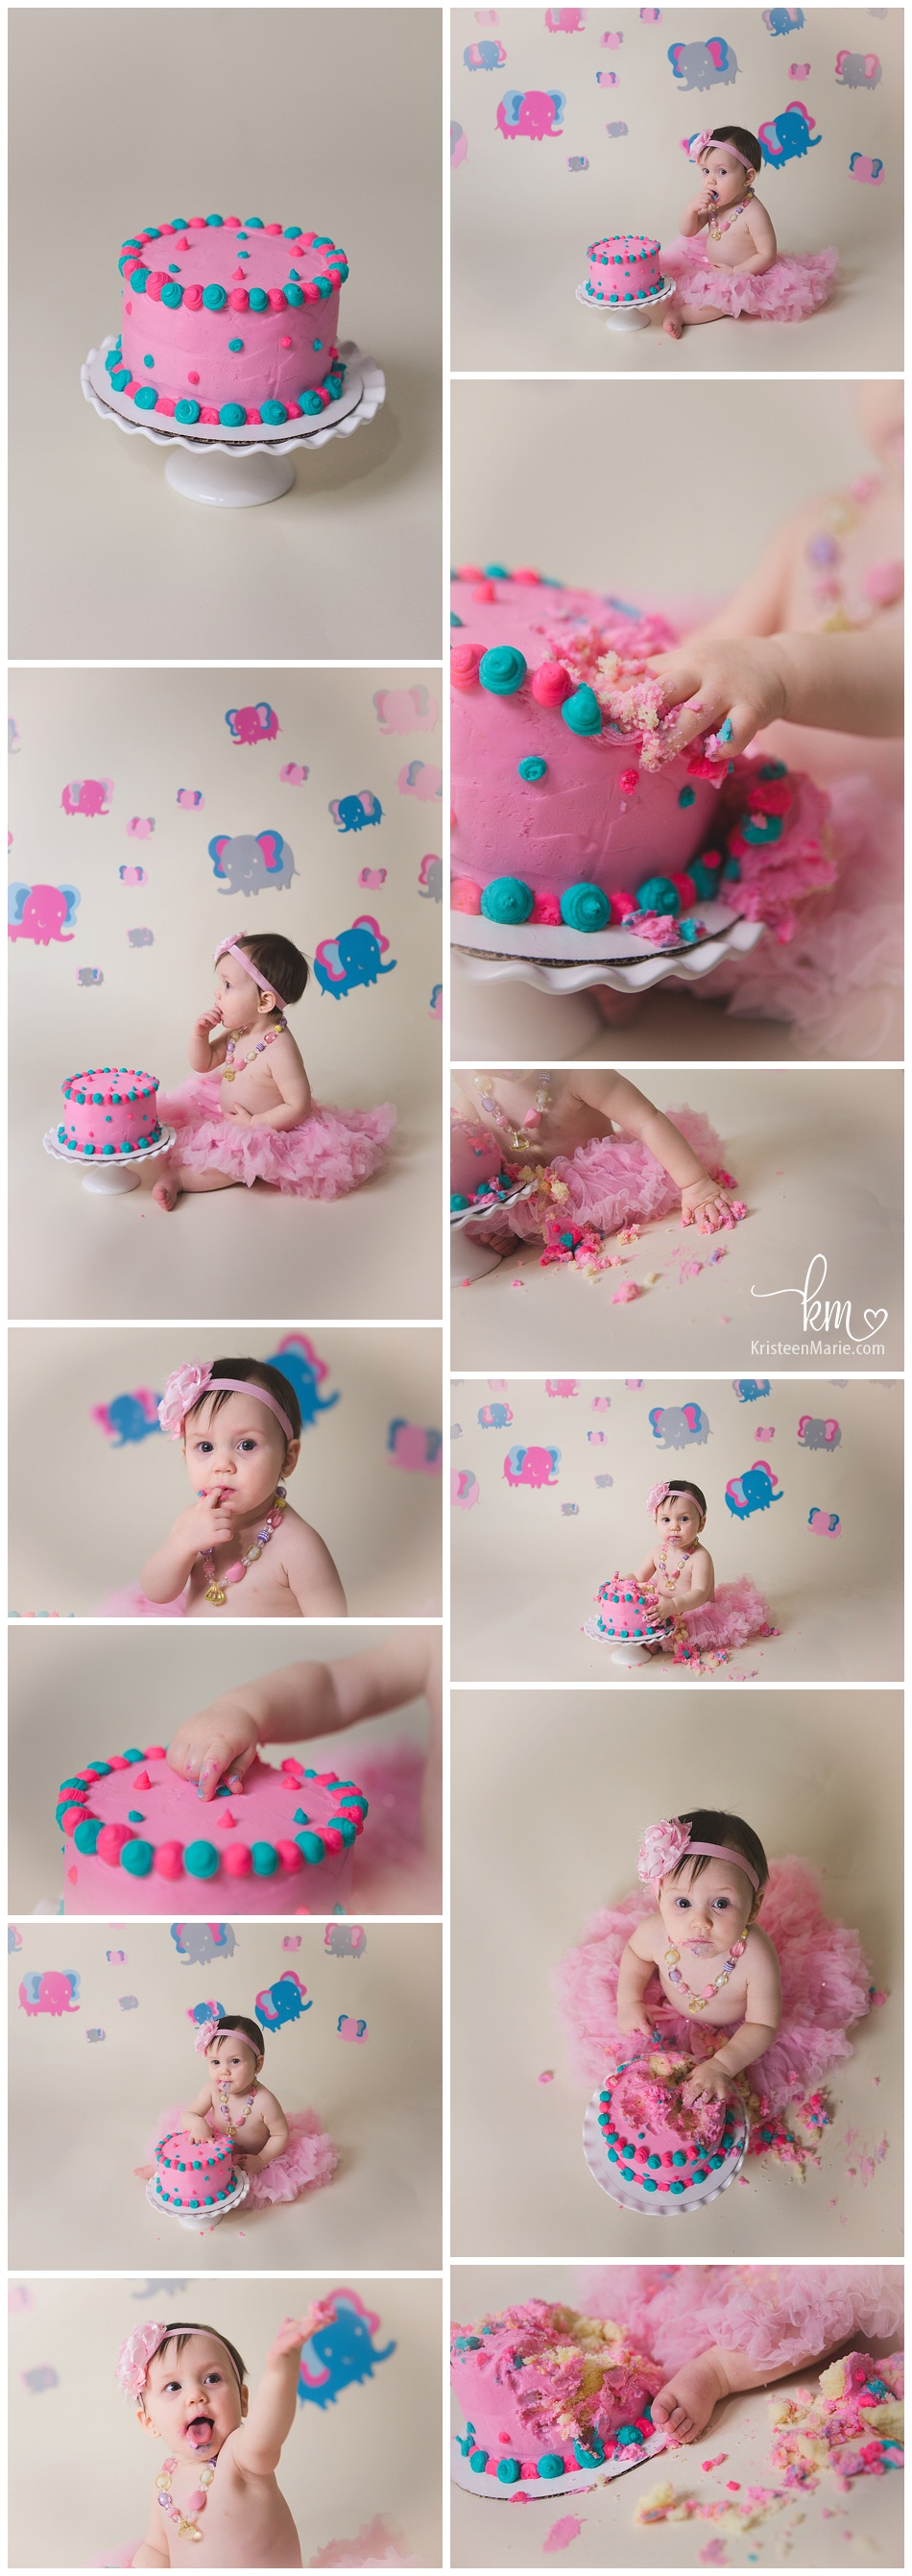 circus themed cake smash for little girl - pink, blue, grey